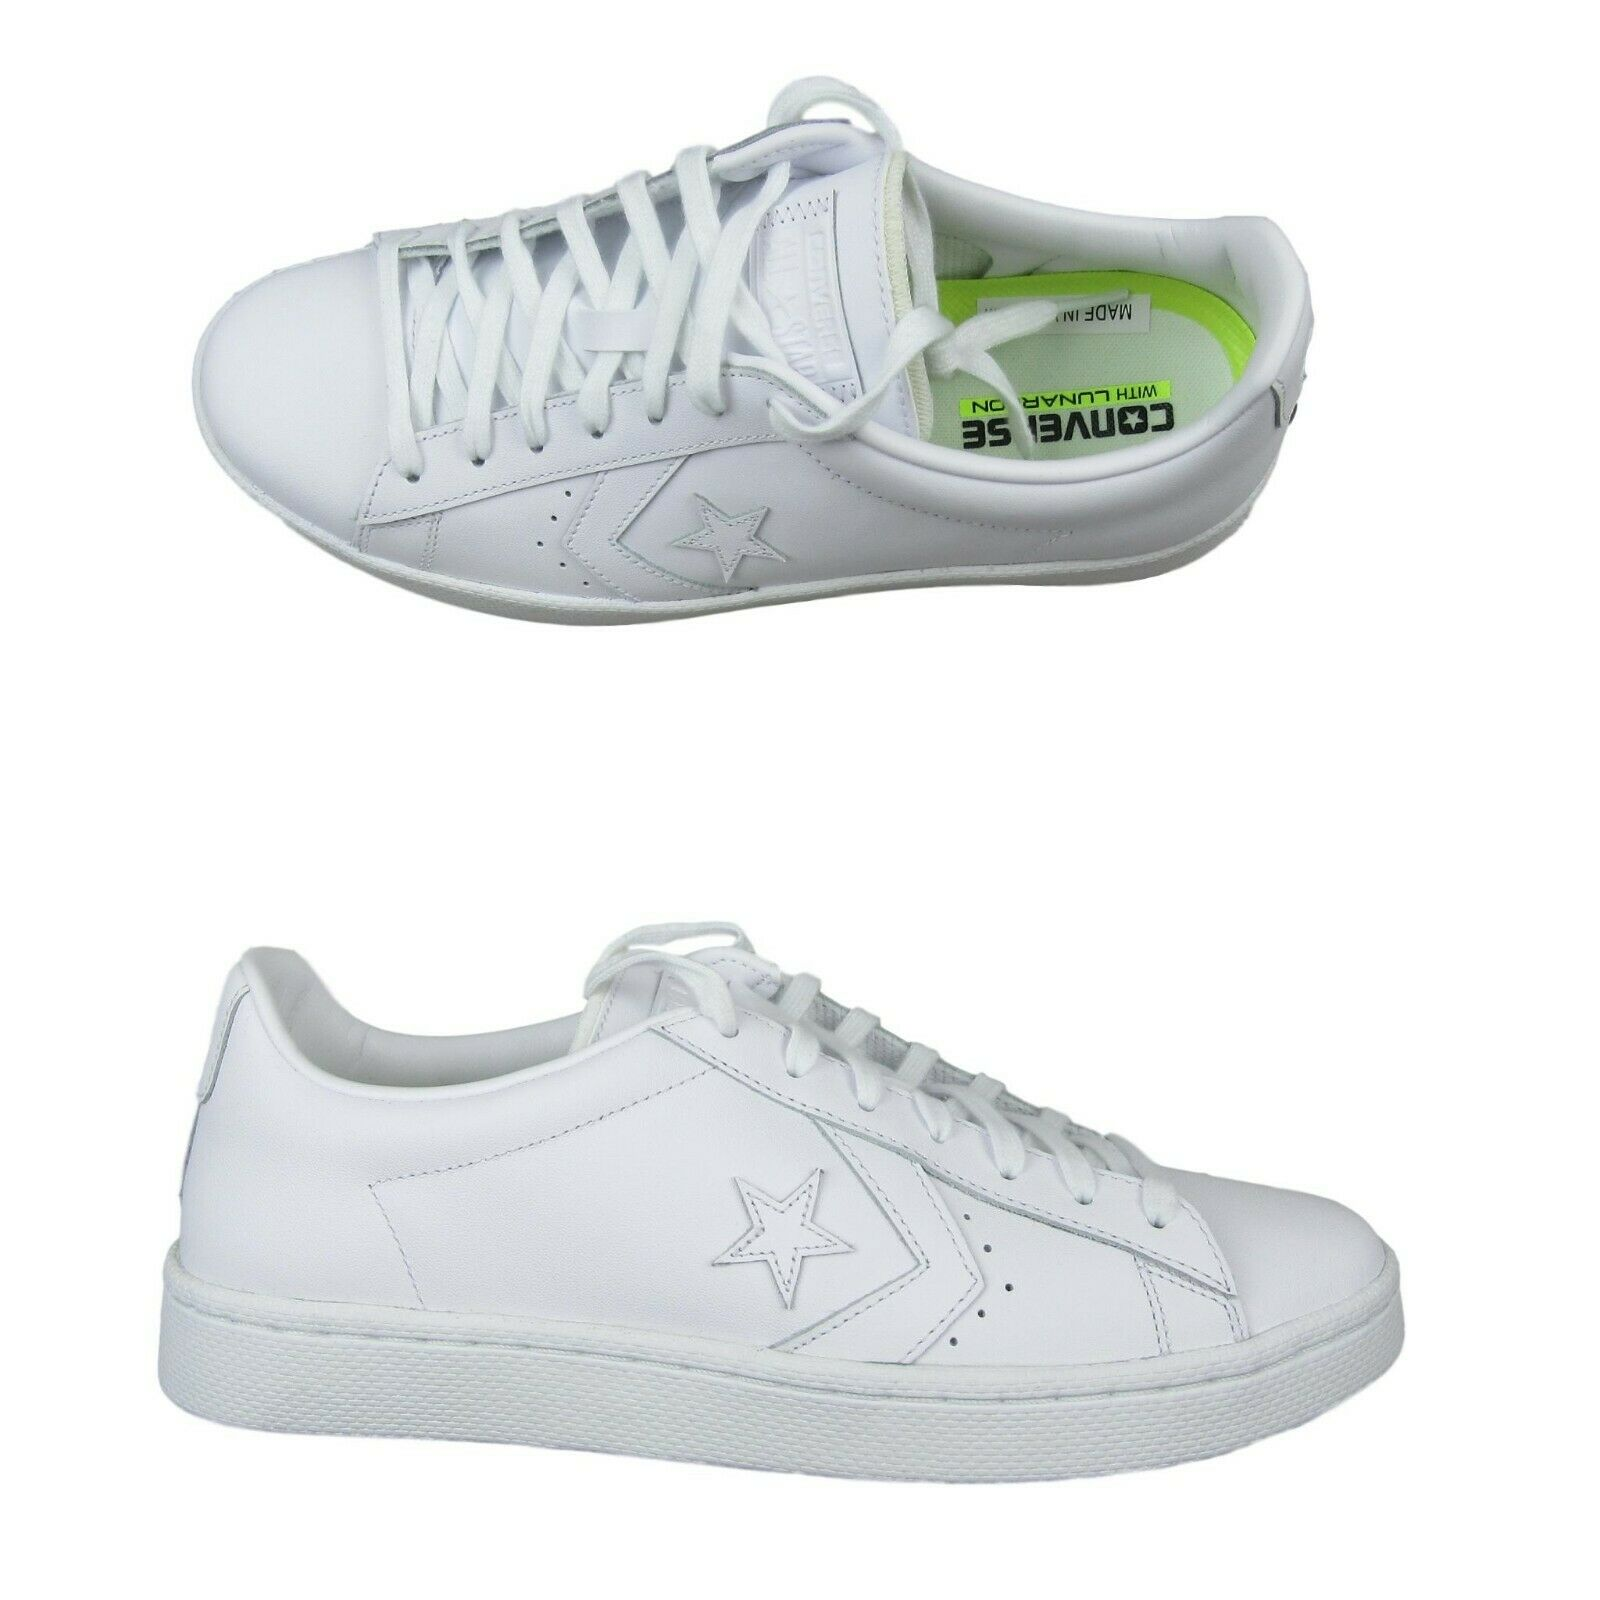 b6cb8a601c80aa Converse Pro Leather Ox Low Triple White Shoes Size 9.5 Mens 155319C New